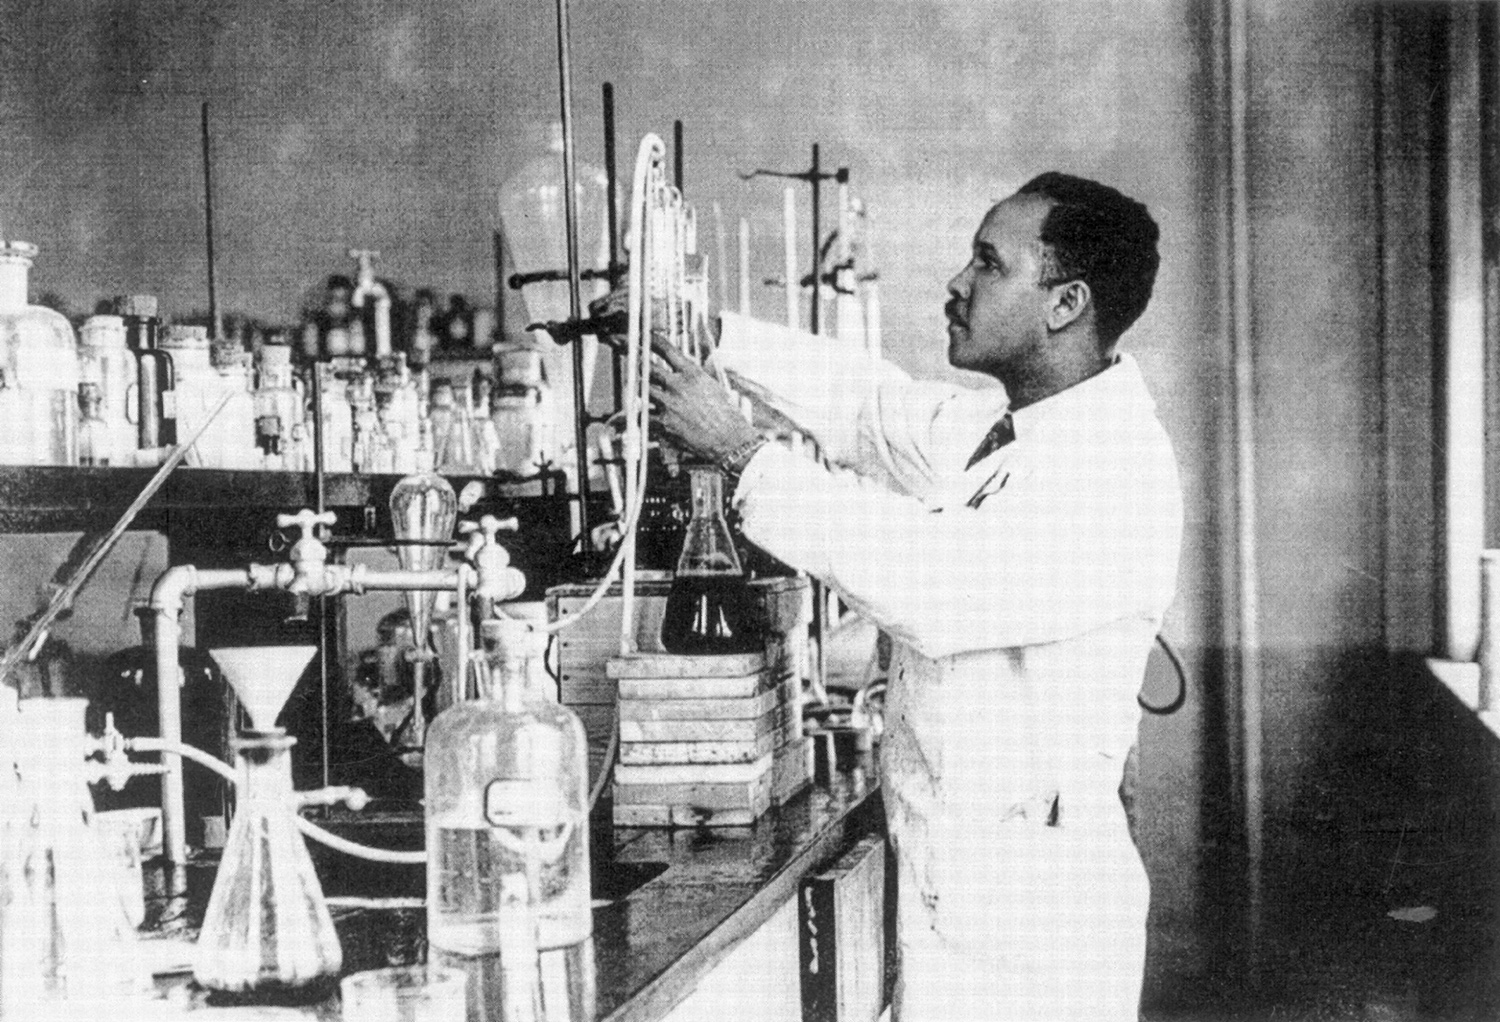 A man in a white coat works with equipment in a laboratory.